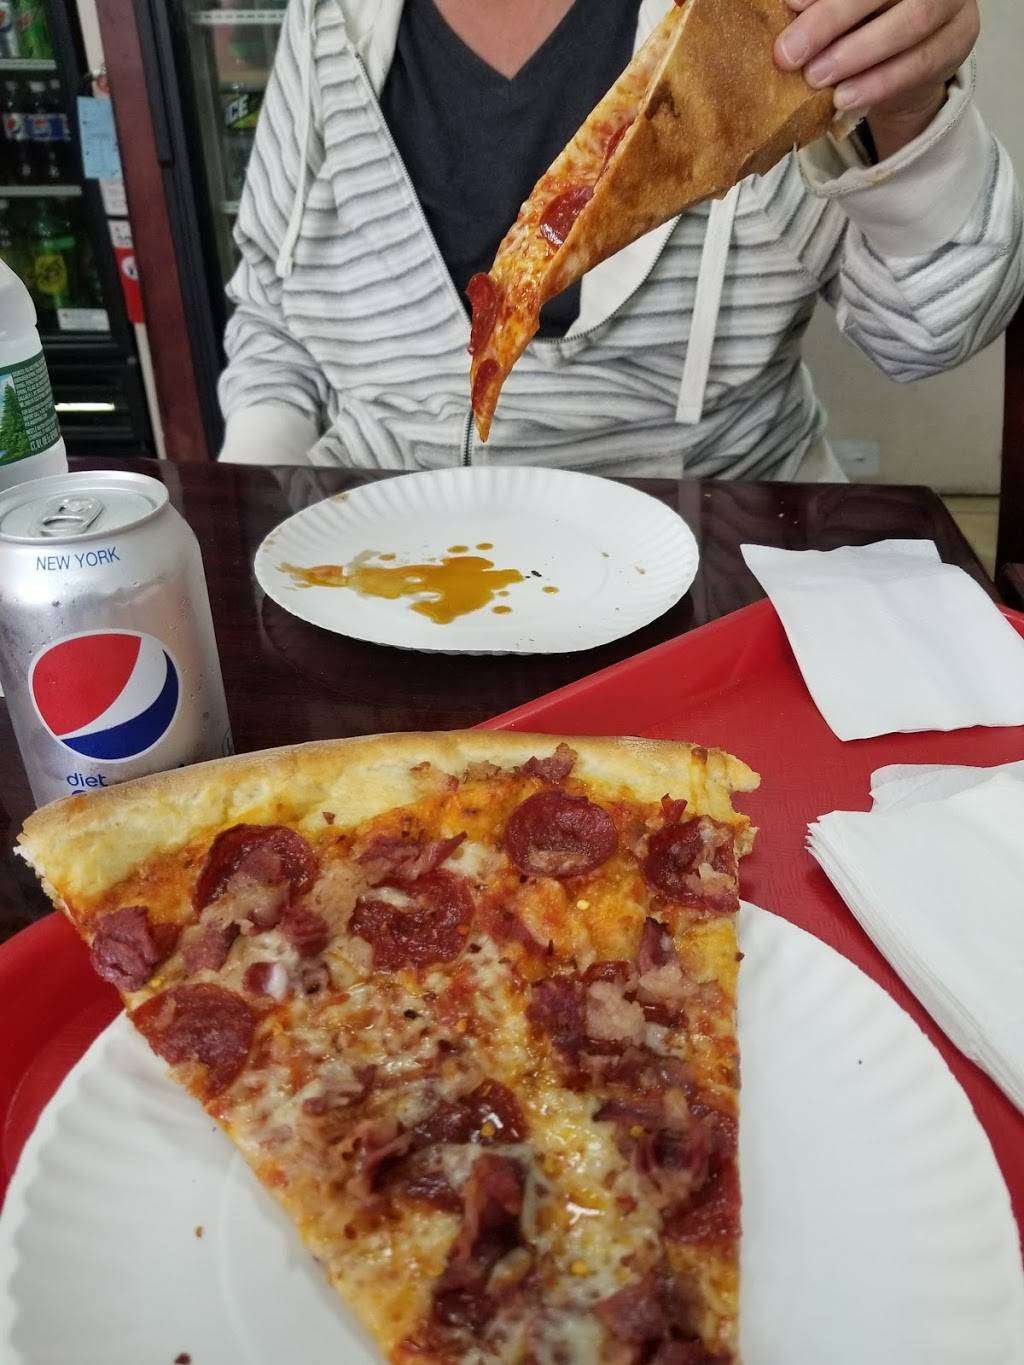 Pepo's Pizza | restaurant | 1522 Amsterdam Ave, New York, NY 10031, USA | 9172616476 OR +1 917-261-6476